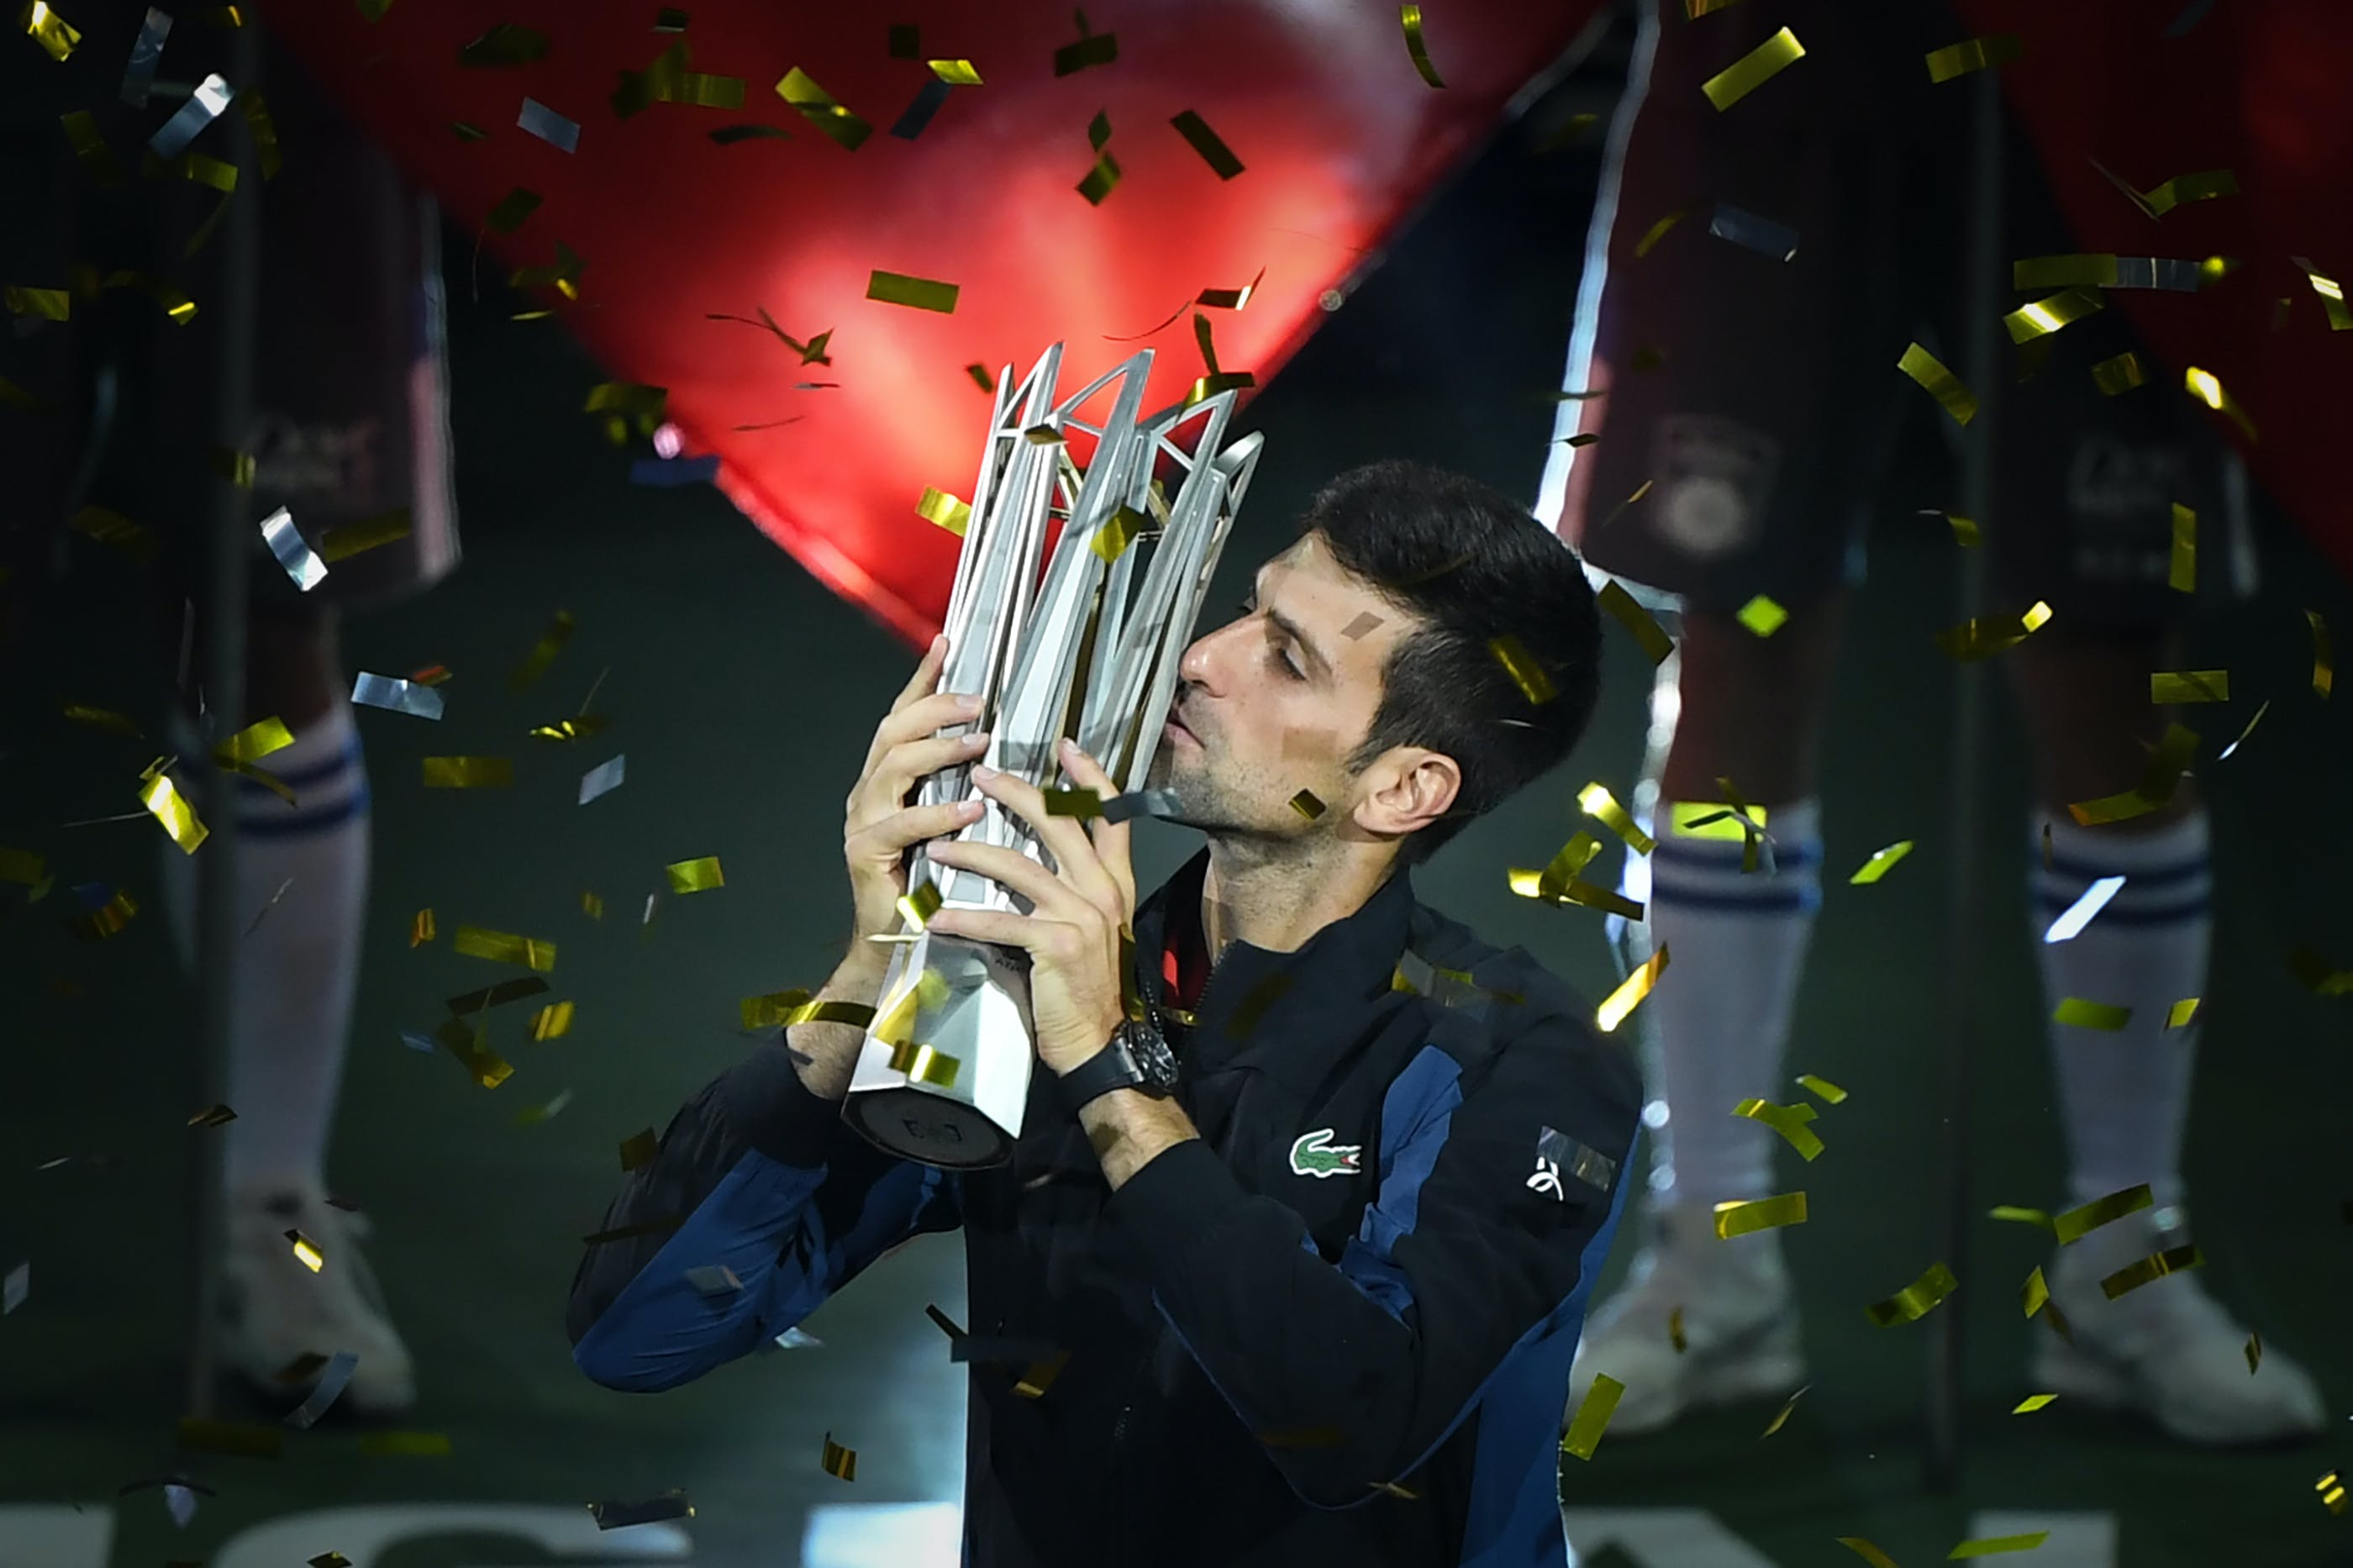 Novak Djokovic lifts the trophy at the 2018 Shanghai Masters 1000.